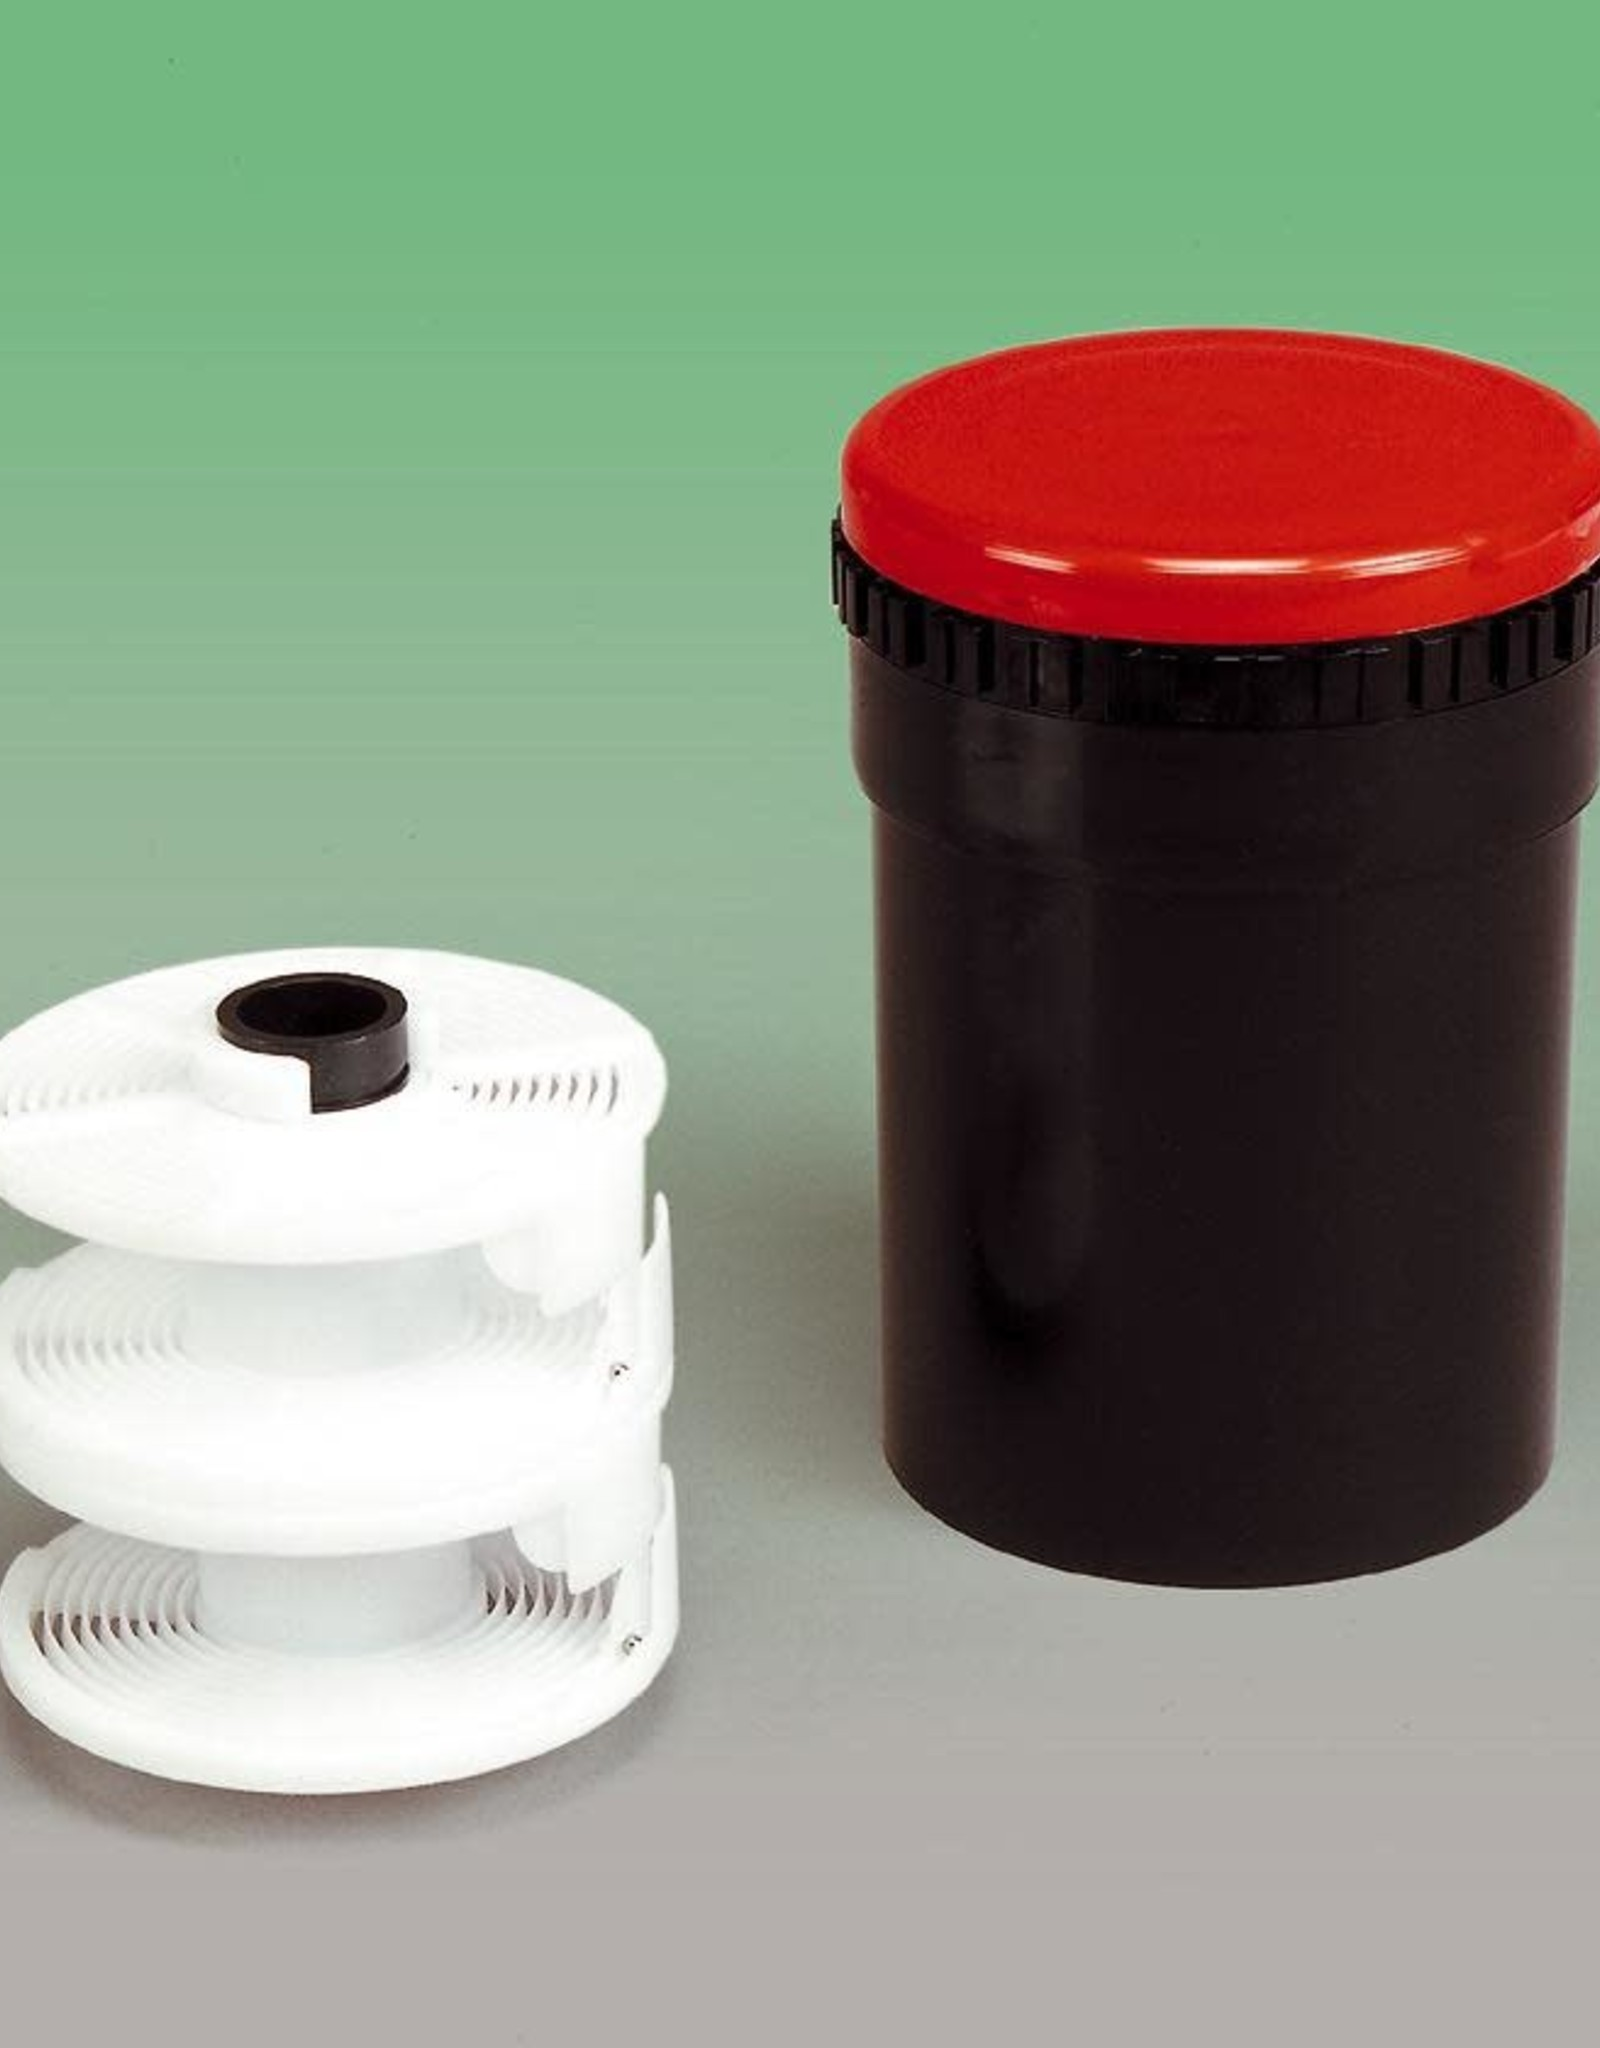 Kaiser Basic Film Processing Kit Includes: Kaiser developing tank with 2 reels, developing tank thermometer, 500ml graduate, 1L mixing jug, funnel  *Chemistry not included *A darkroom, or light tight space also required